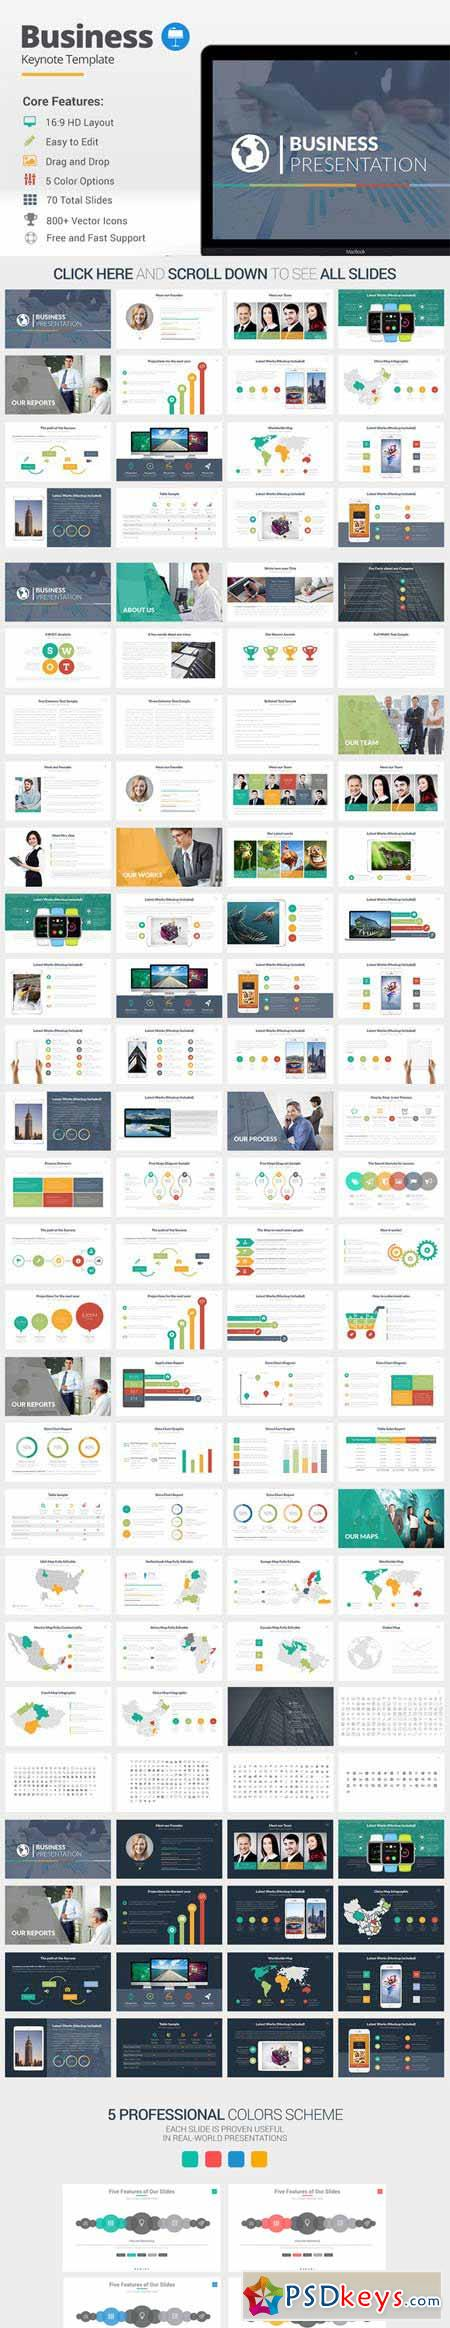 Business Keynote Template 389753 Free Download Photoshop – Keynote Template